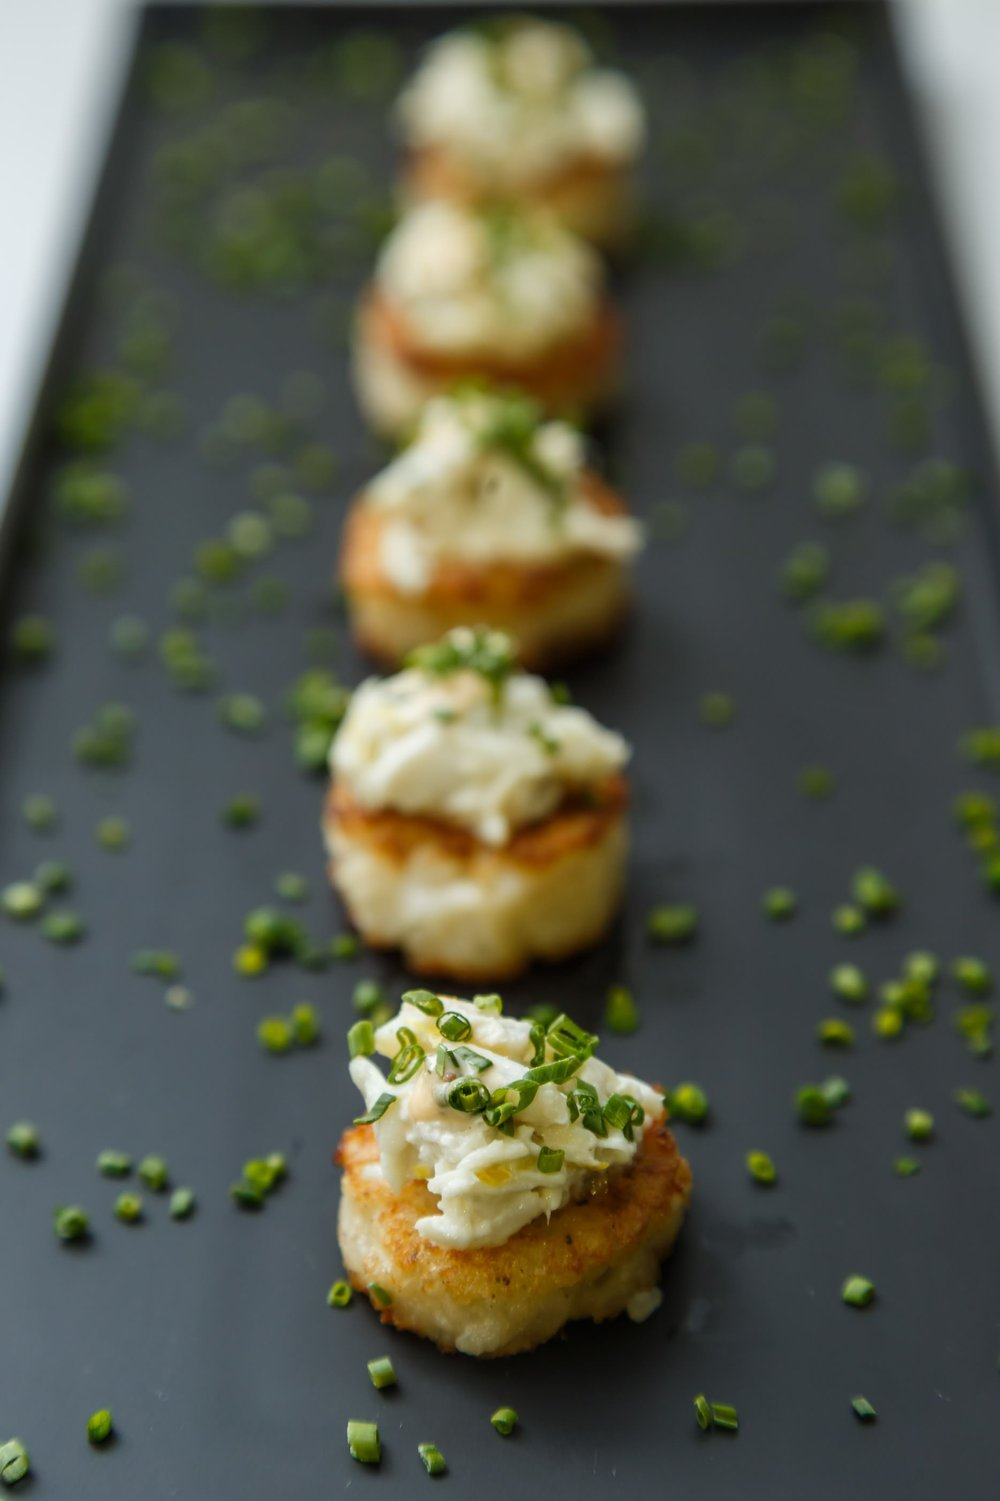 Catering-Los Angeles-Beverly Hills-Passed-Hors D'Oeuvre-Crabcake.jpg